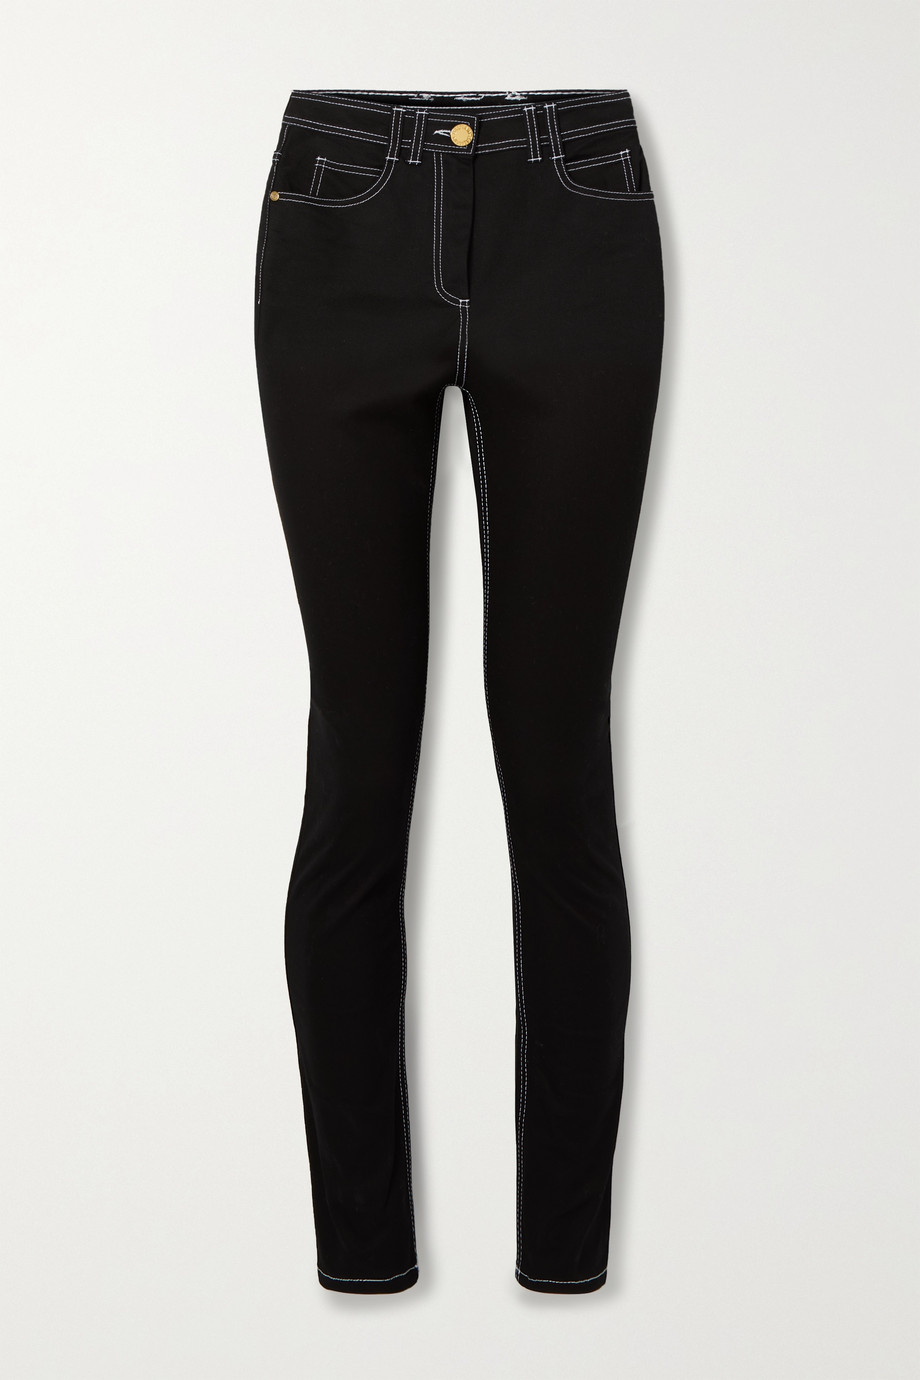 BALMAIN Embroidered high-rise skinny jeans